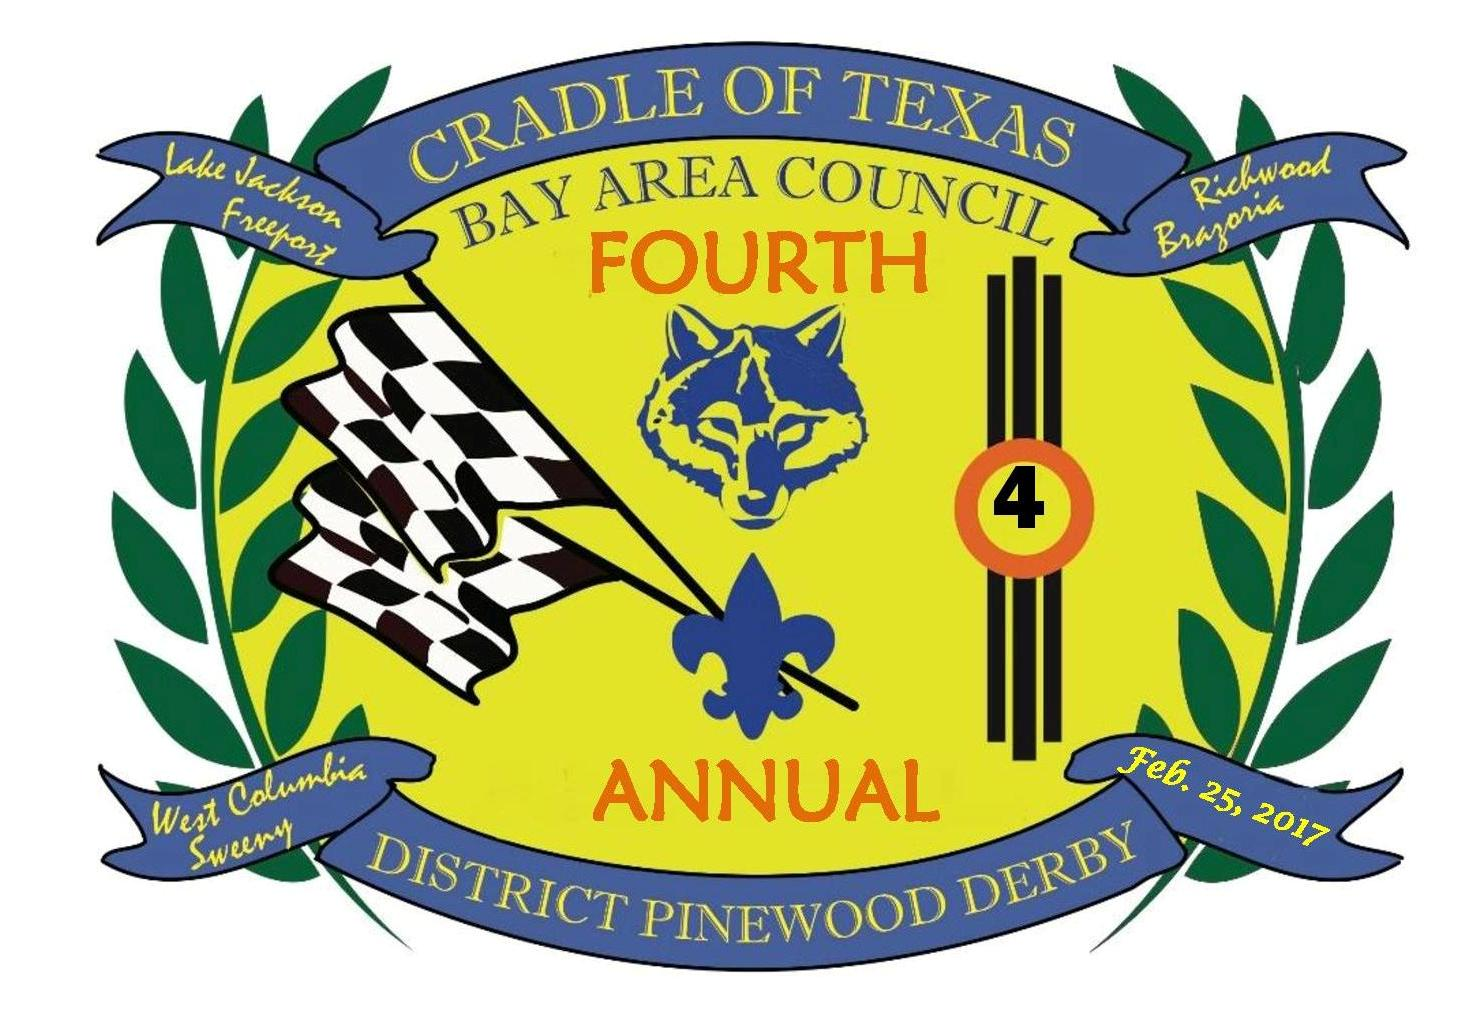 Cradle of Texas Pinewood Derby